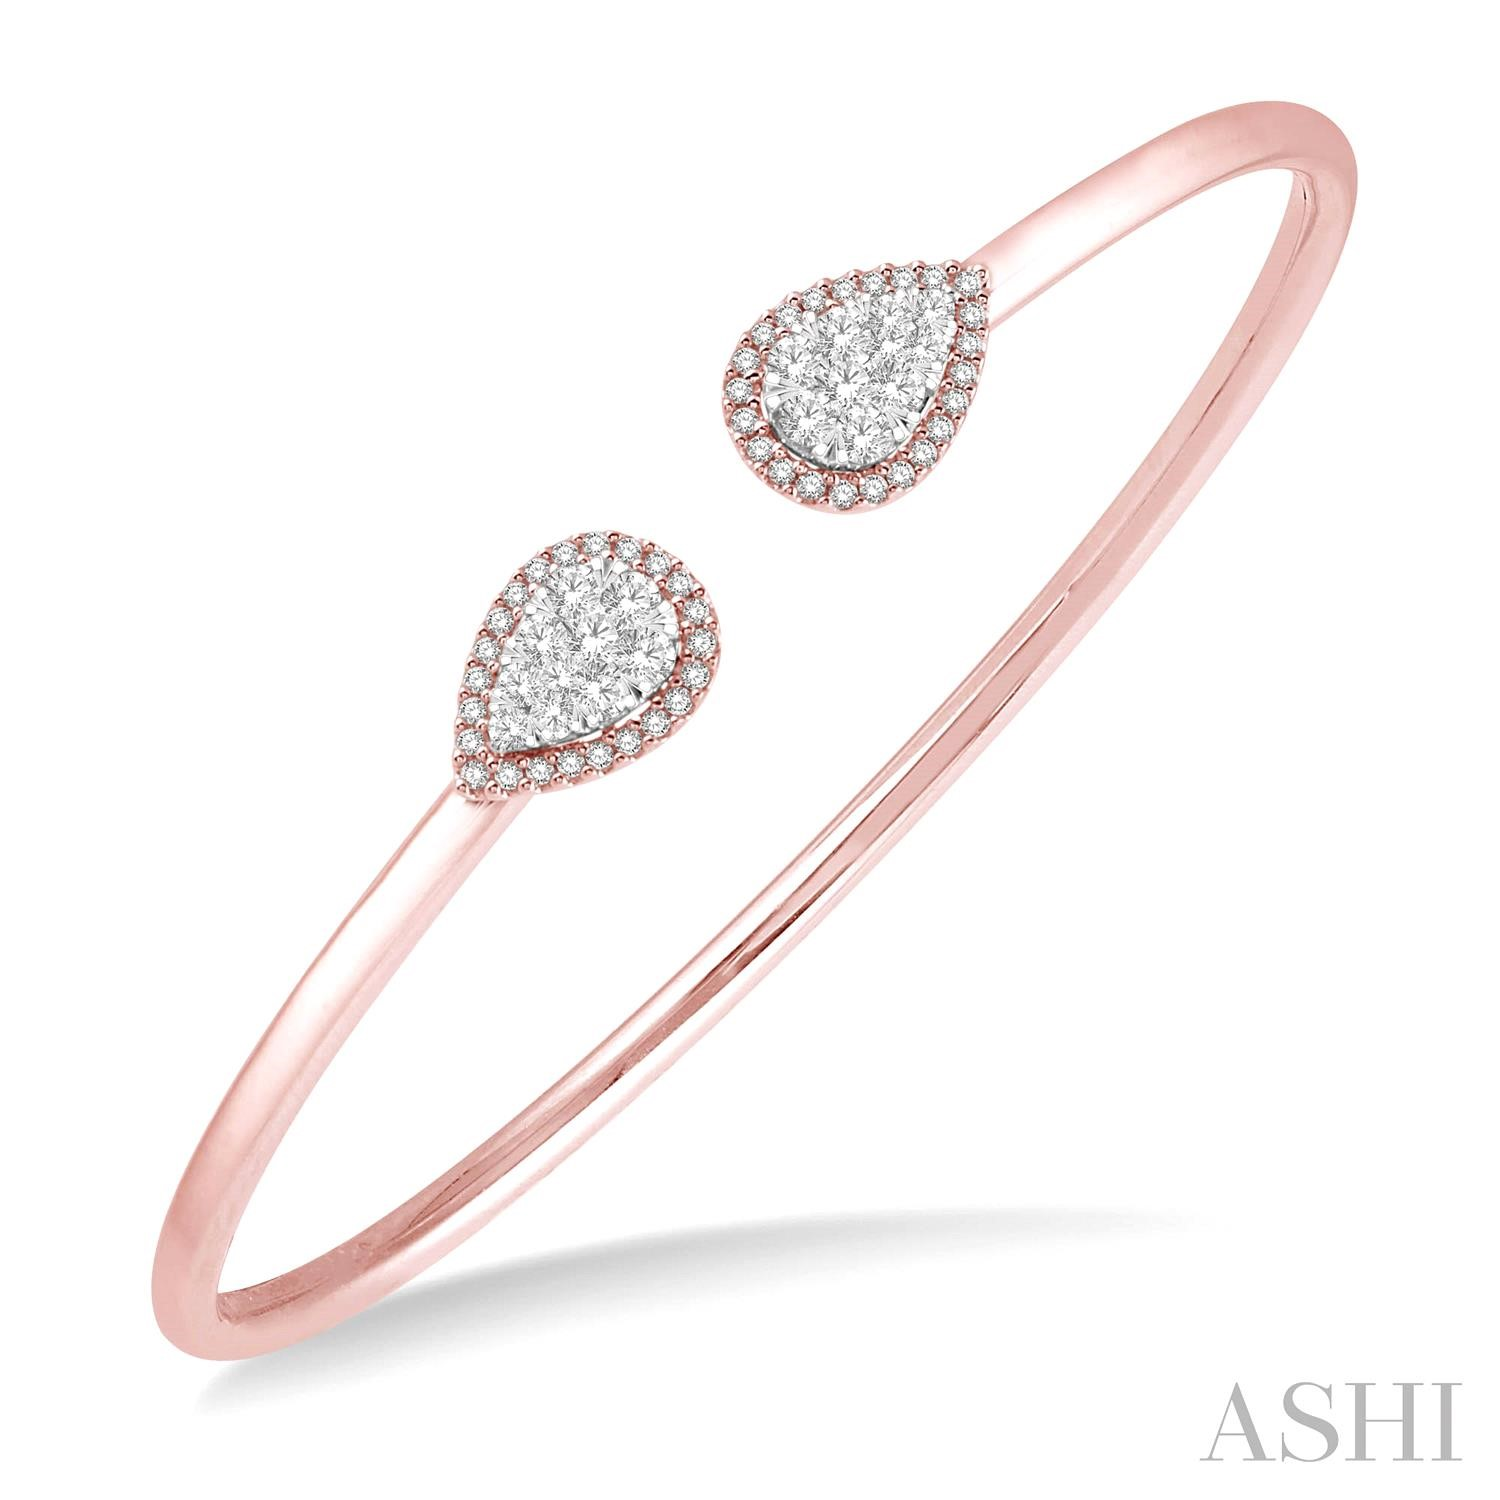 PEAR SHAPE LOVEBRIGHT CUFF OPEN DIAMOND BANGLE